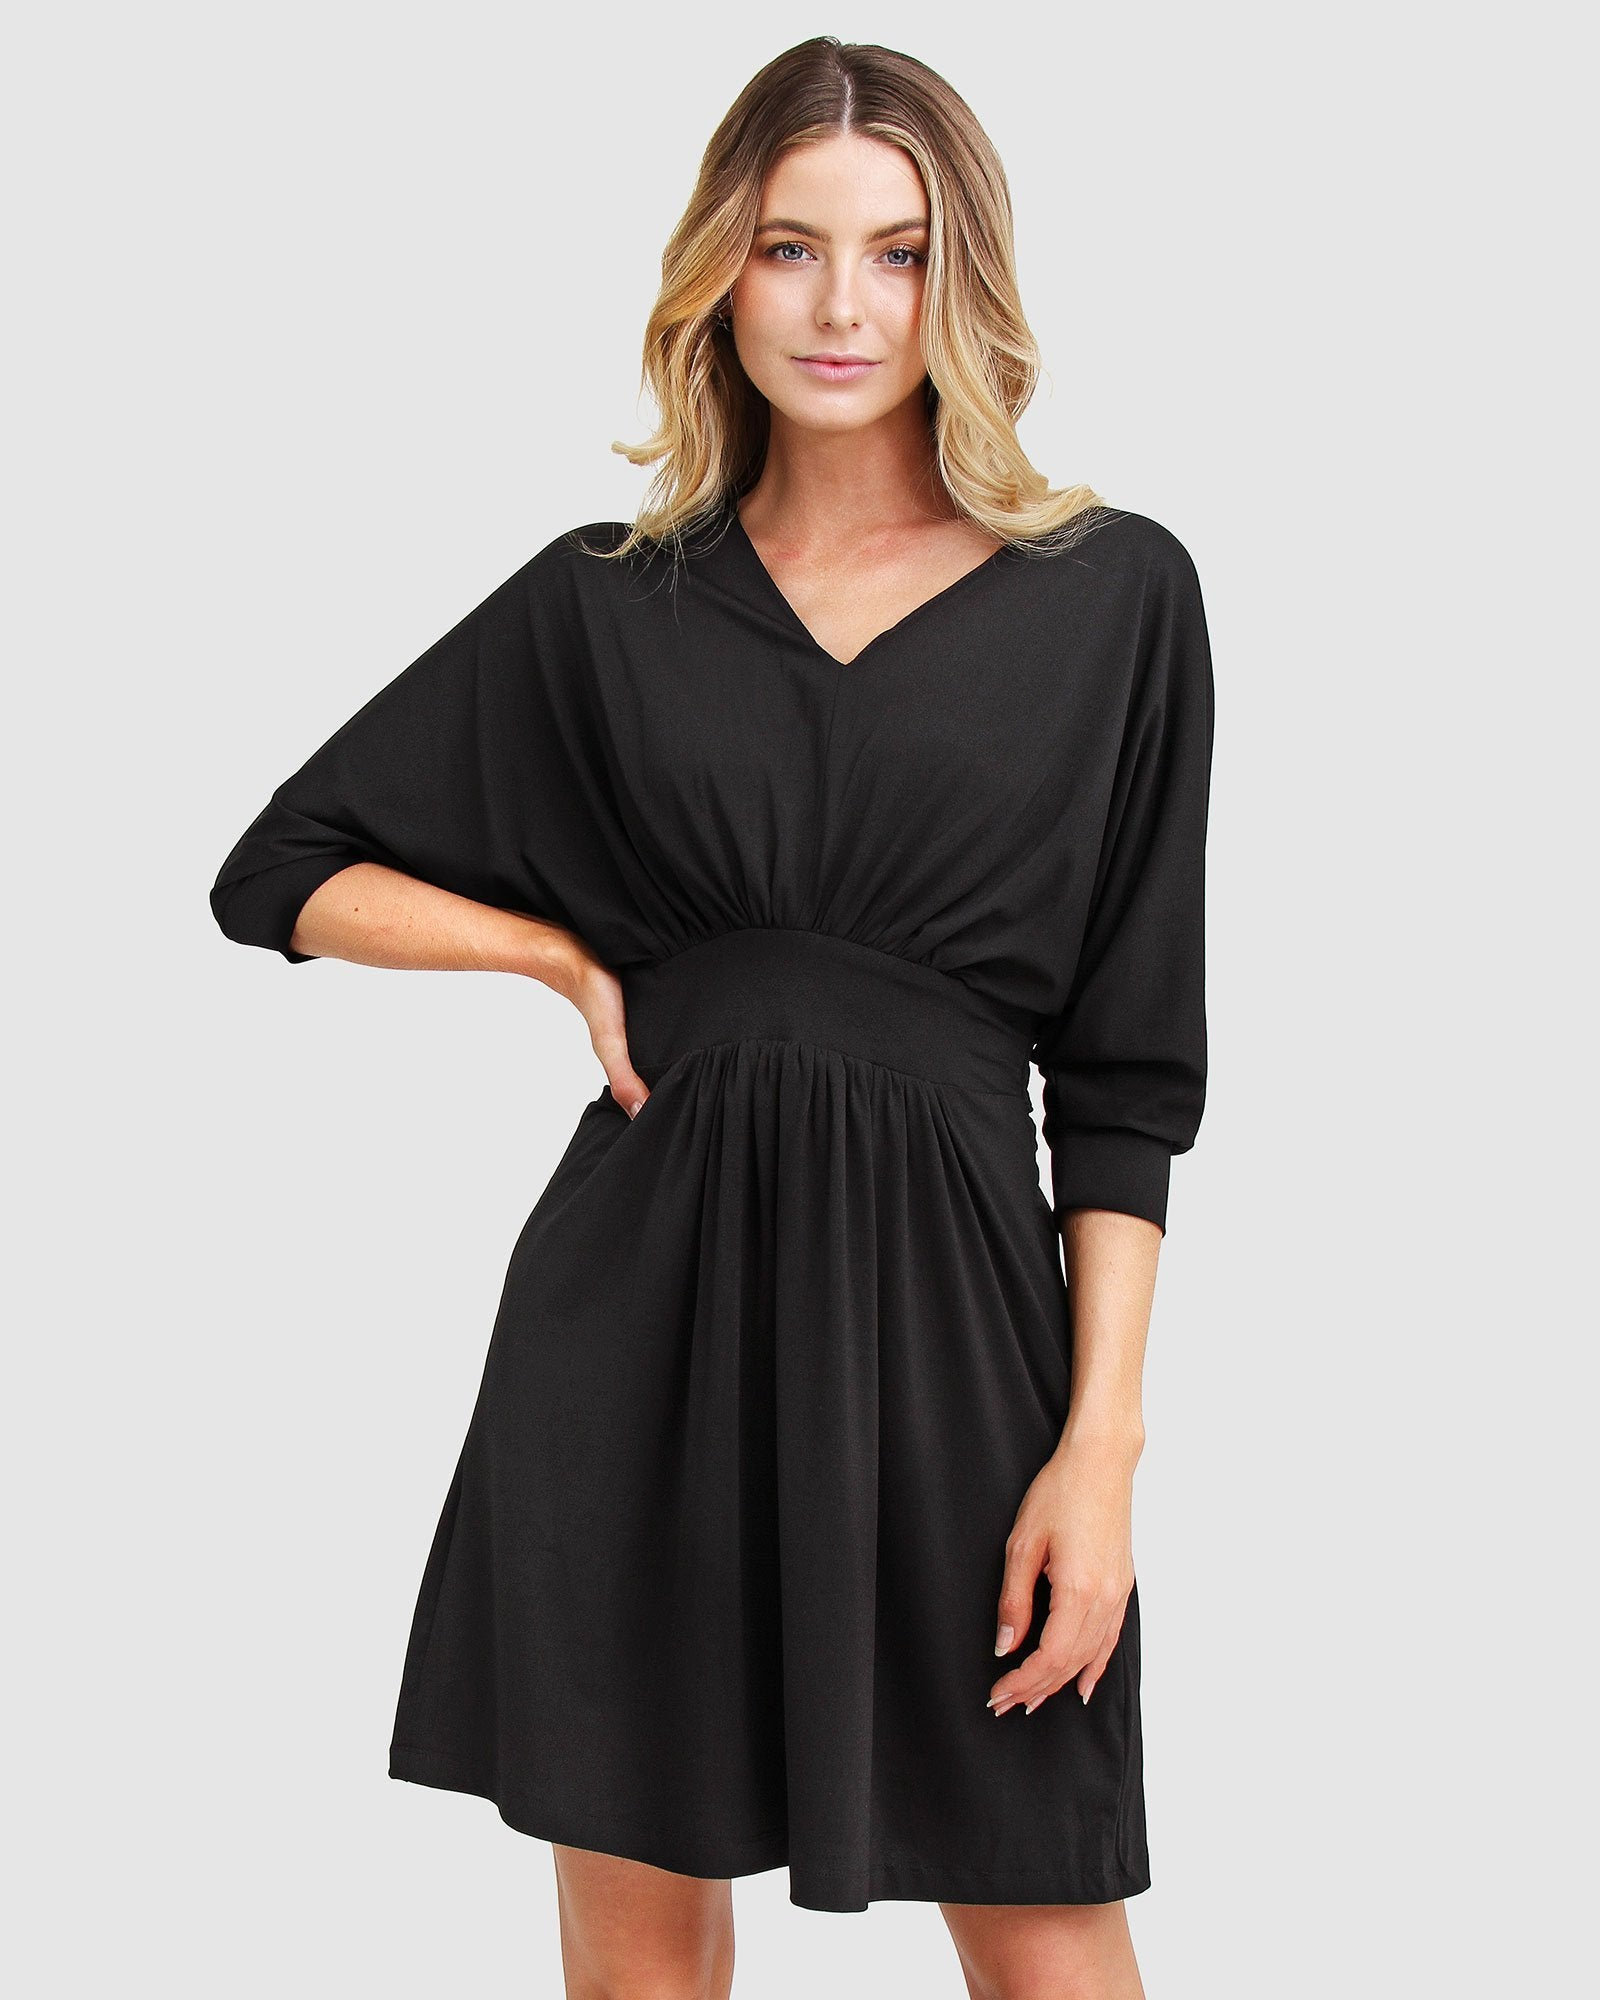 Morning Light Mini Dress - Black